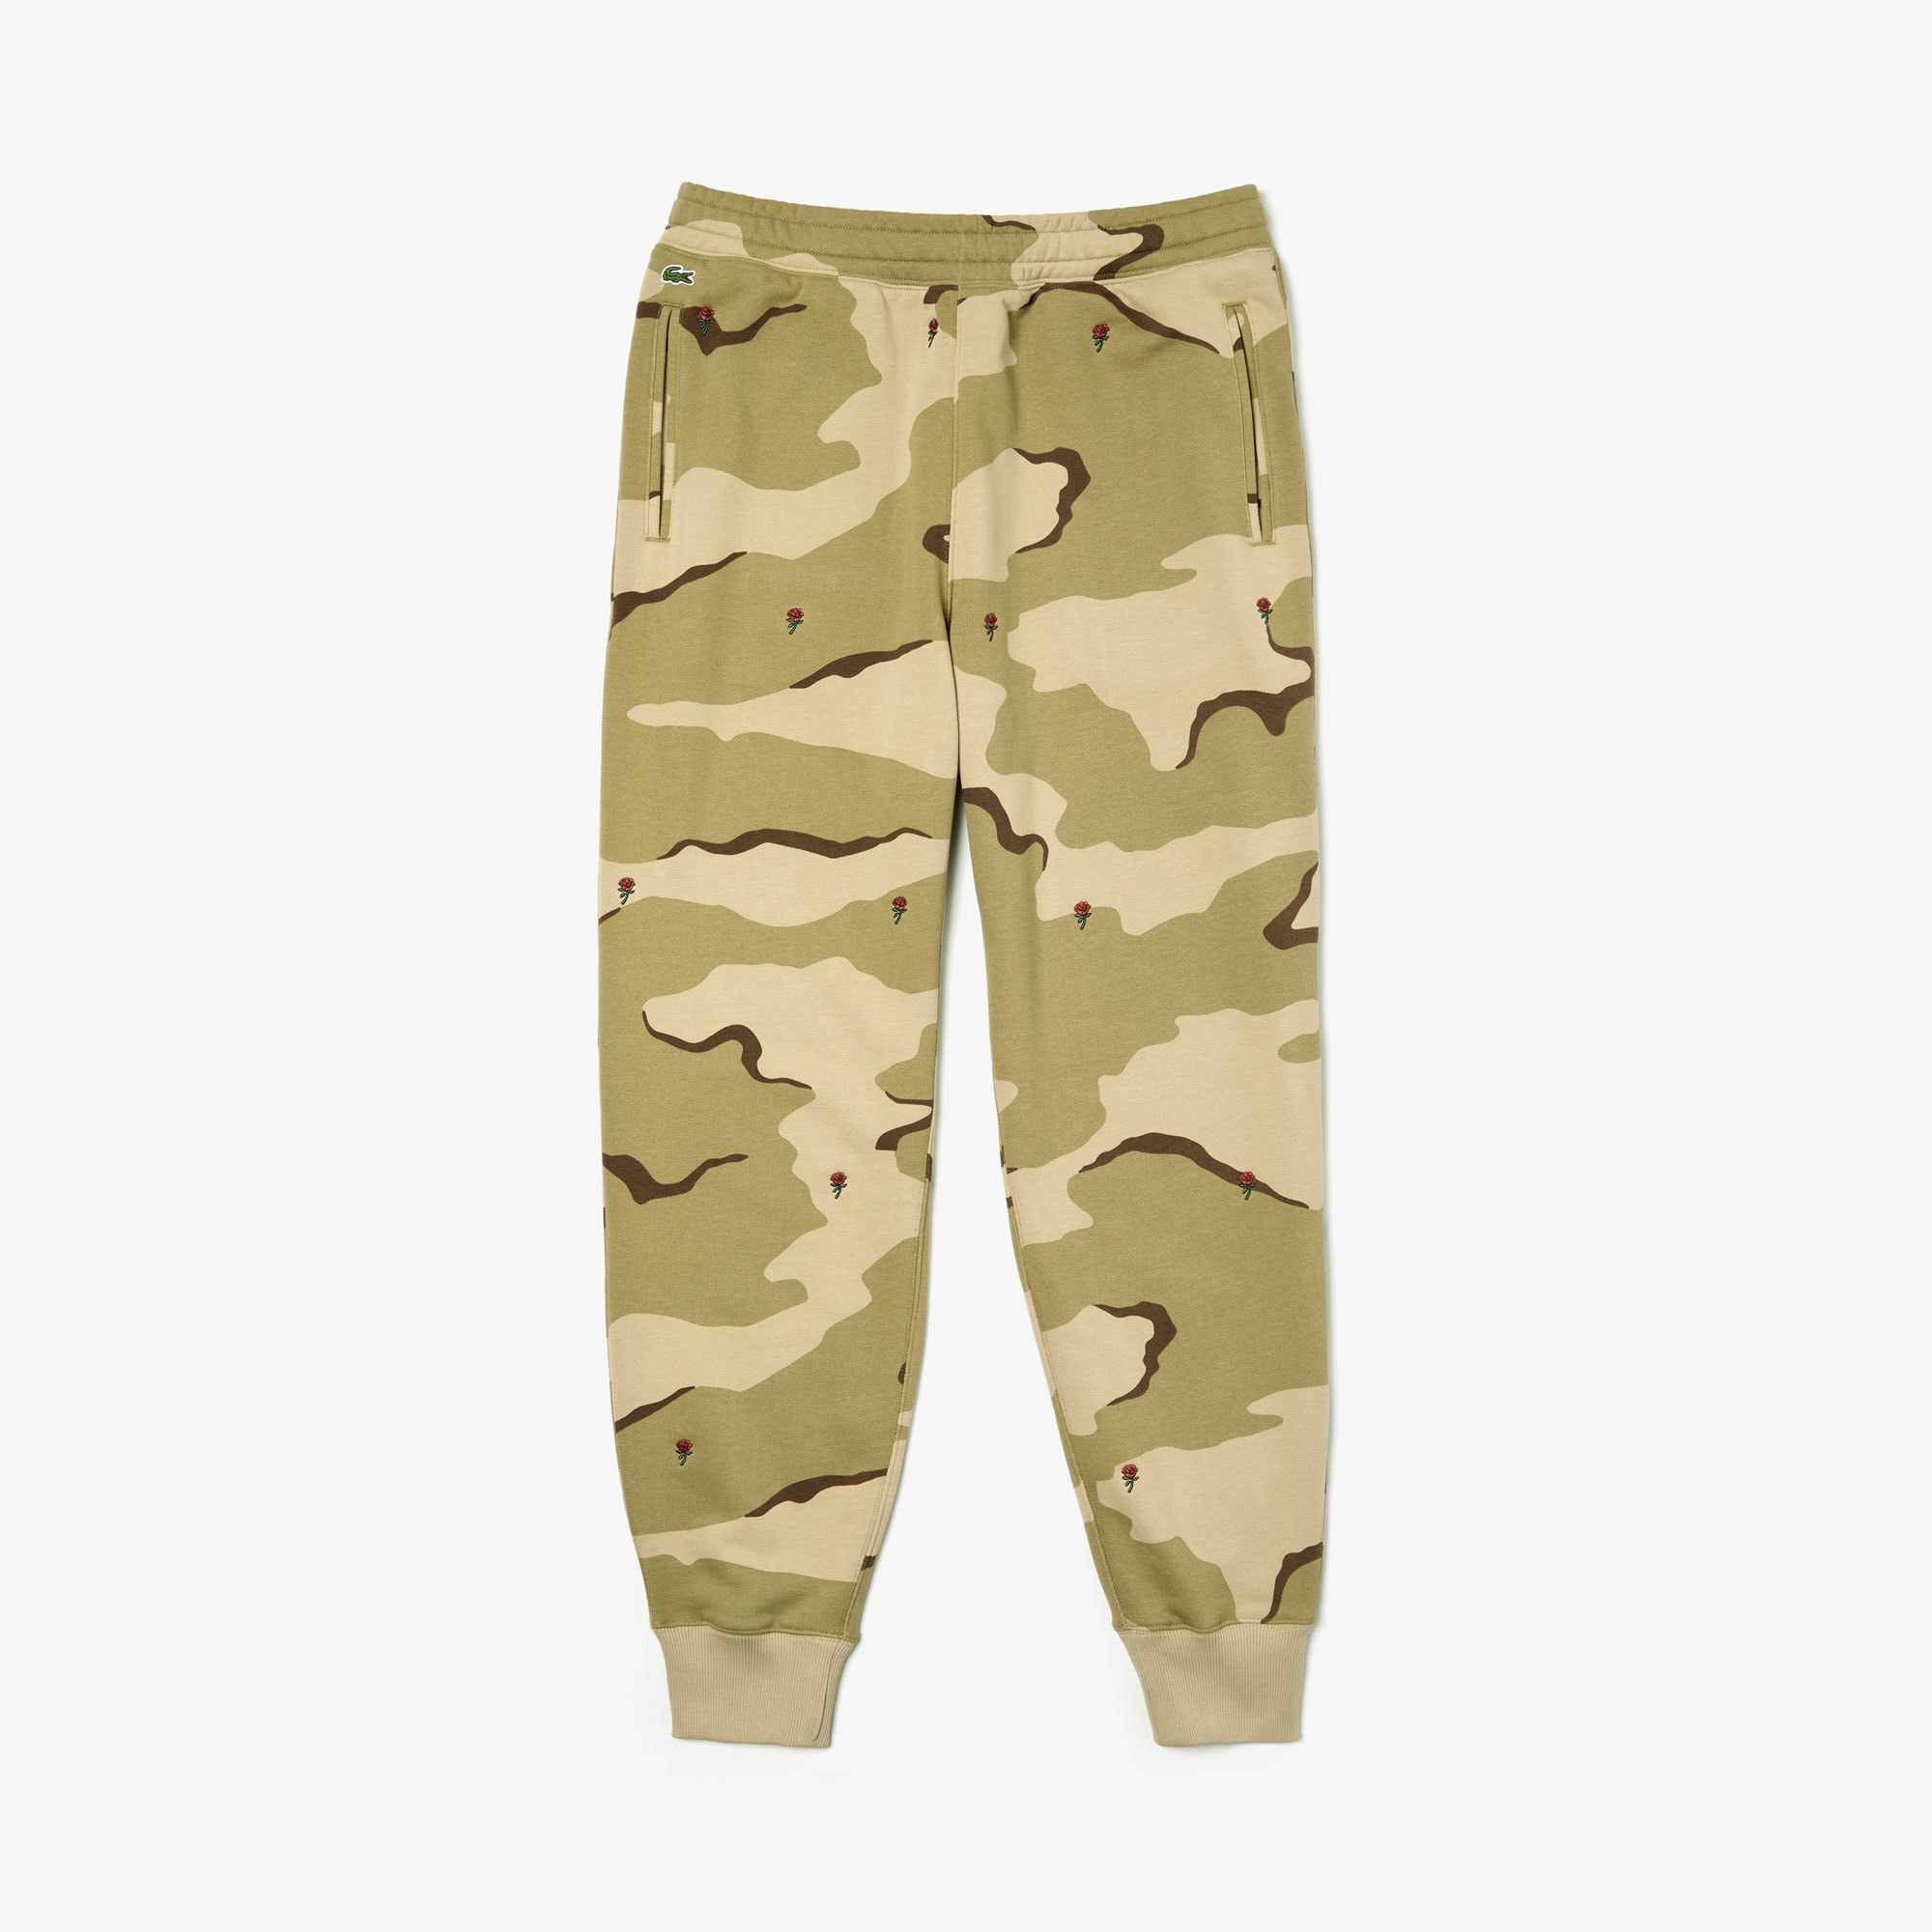 Men's Live Rose Embroidered Camo Sweatpant